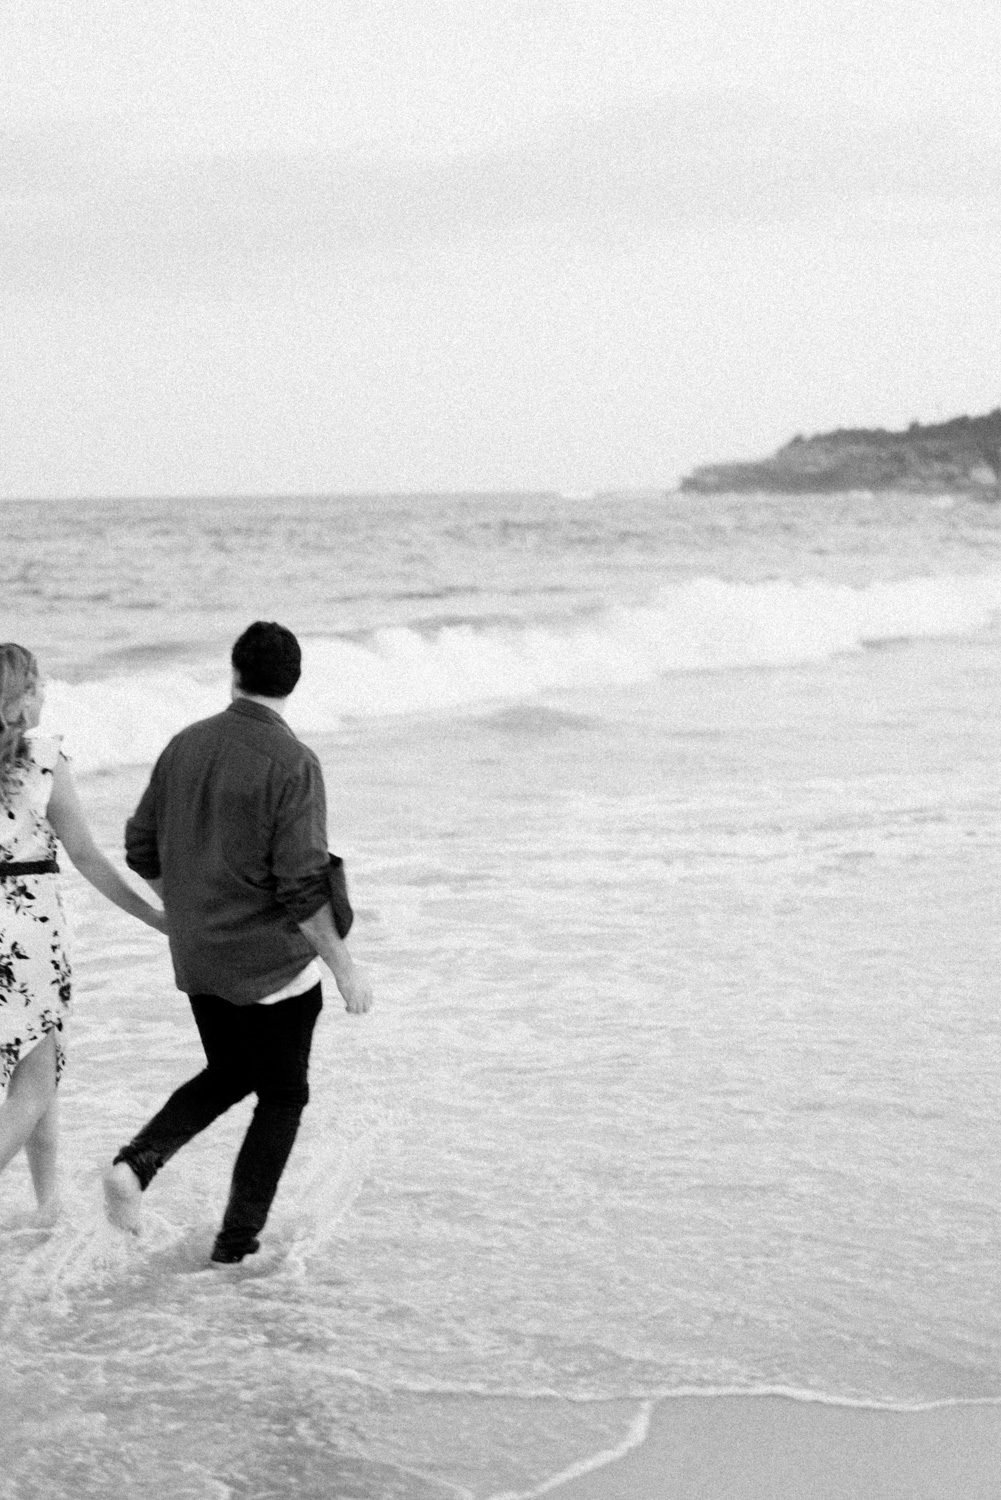 Engagement photo at Coogee Beach